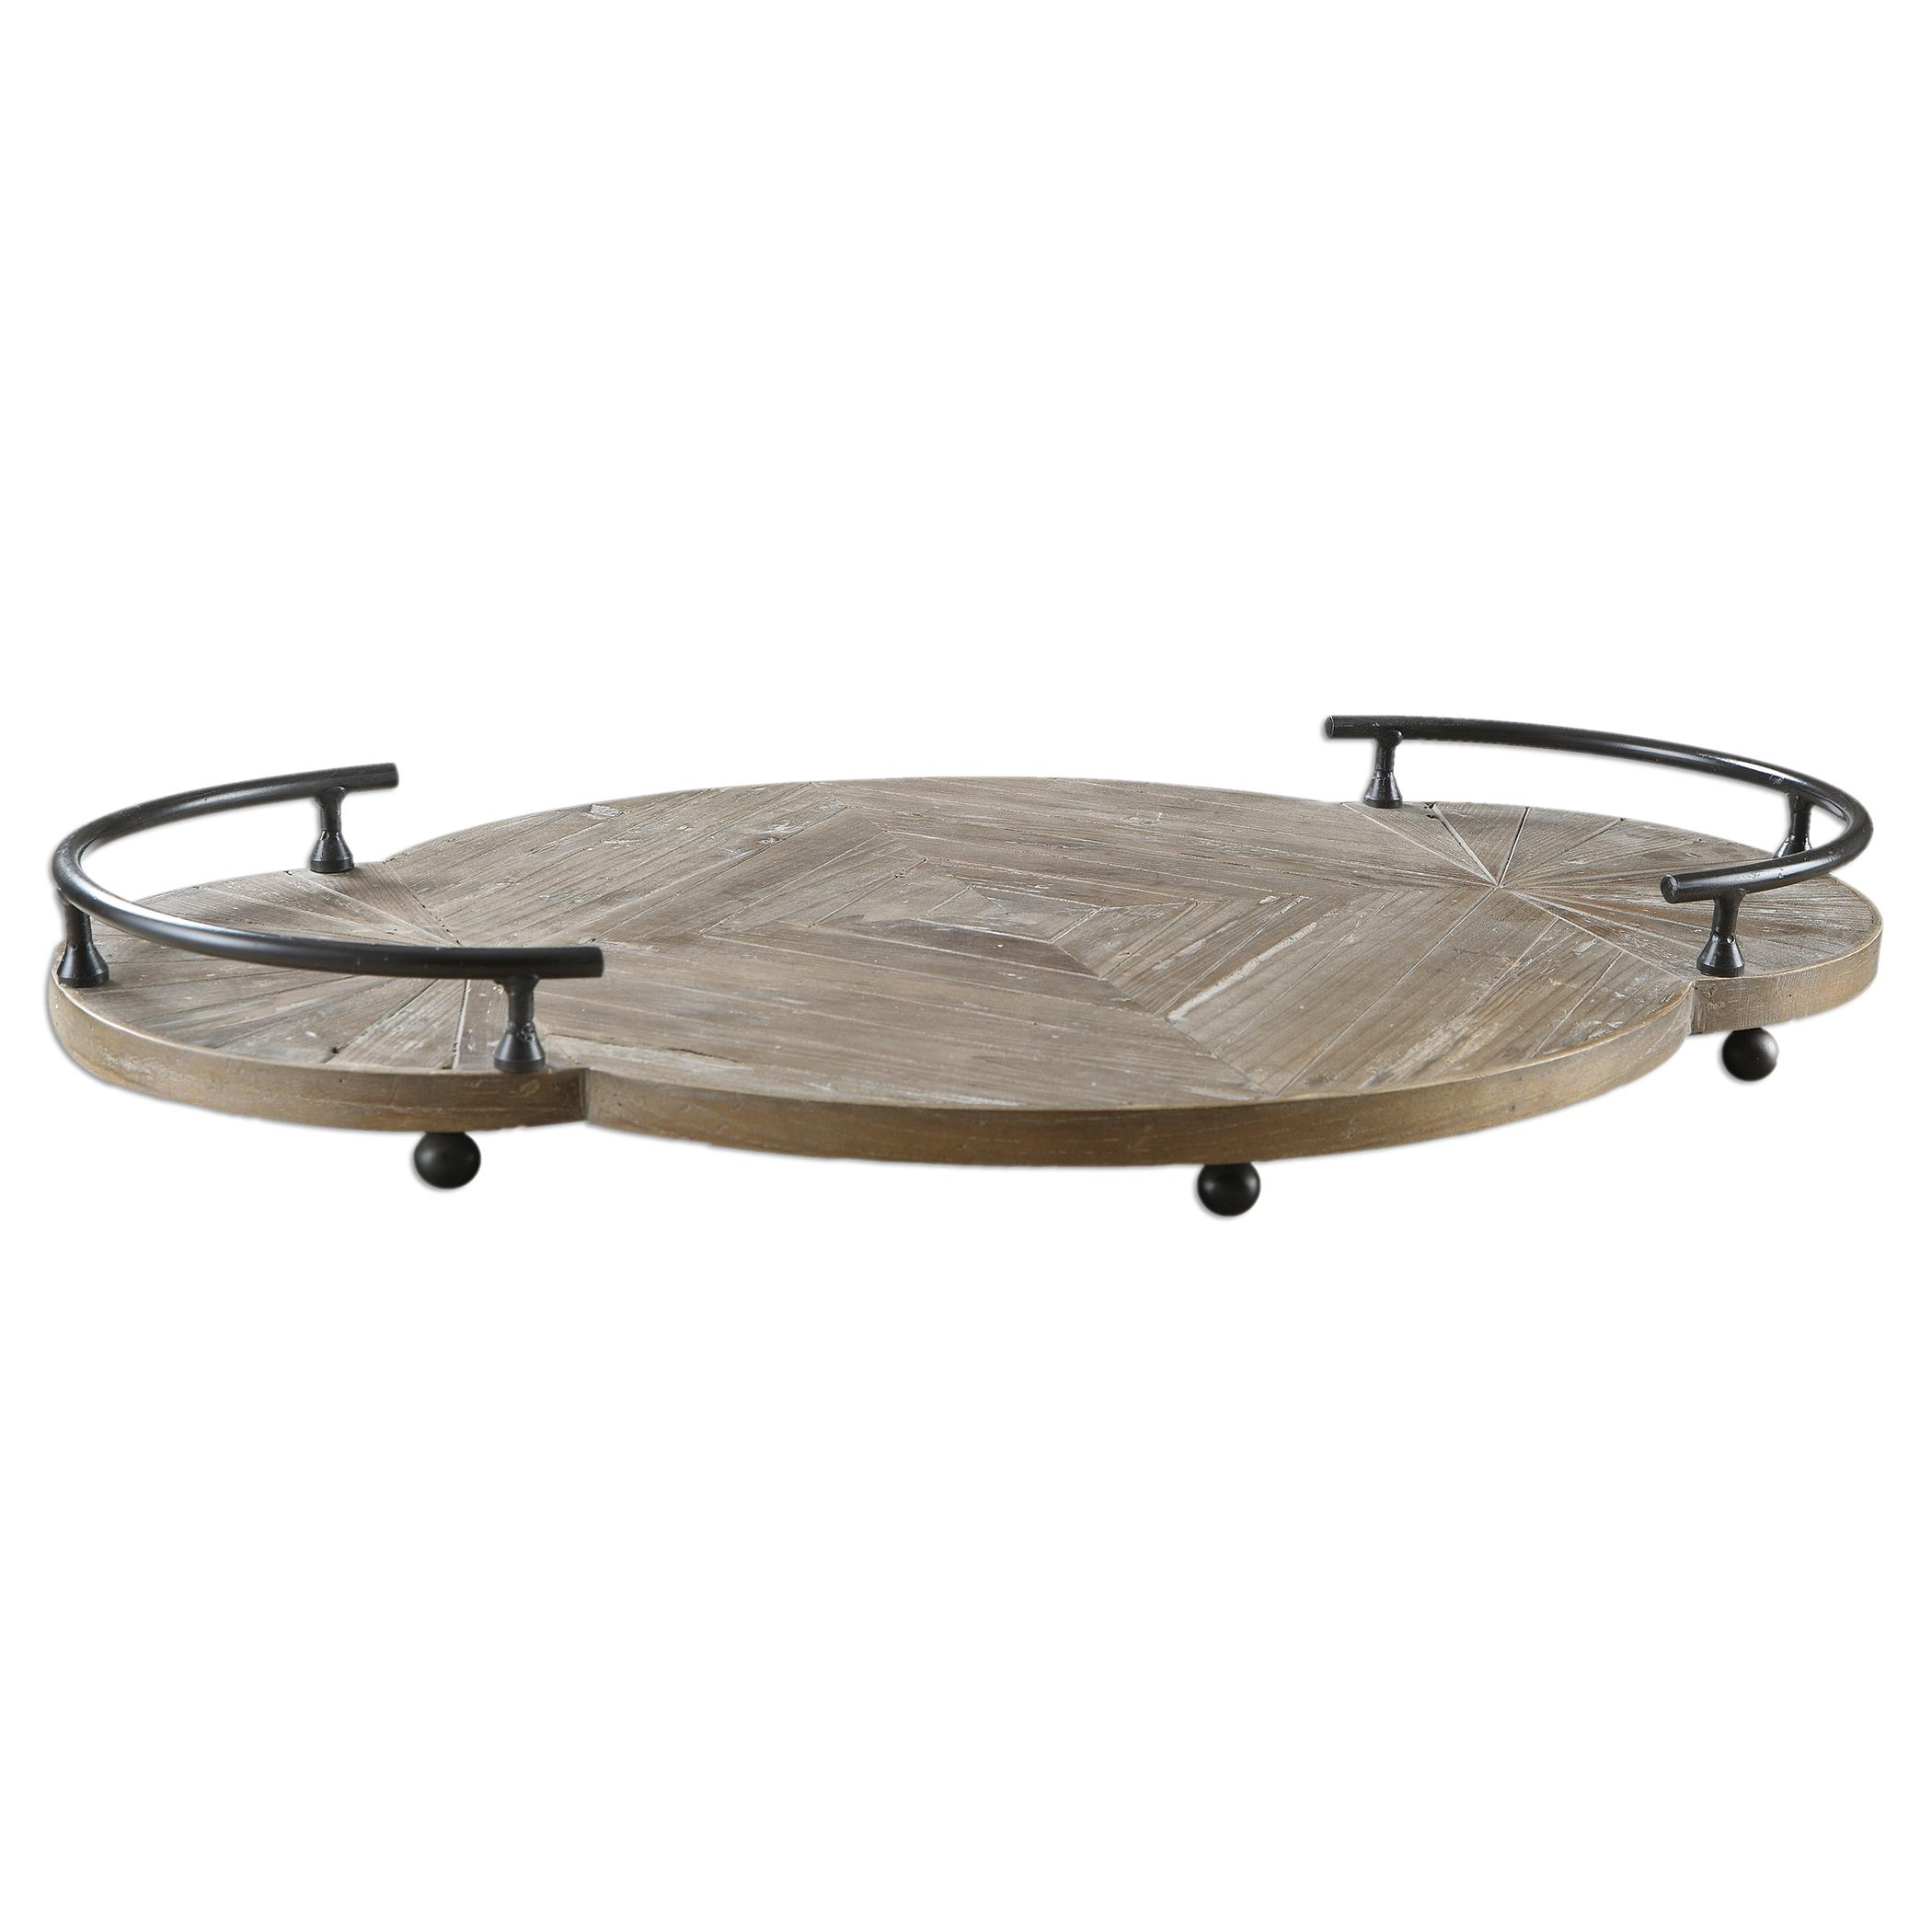 Uttermost Accessories Baku Wooden Tray - Item Number: 19995